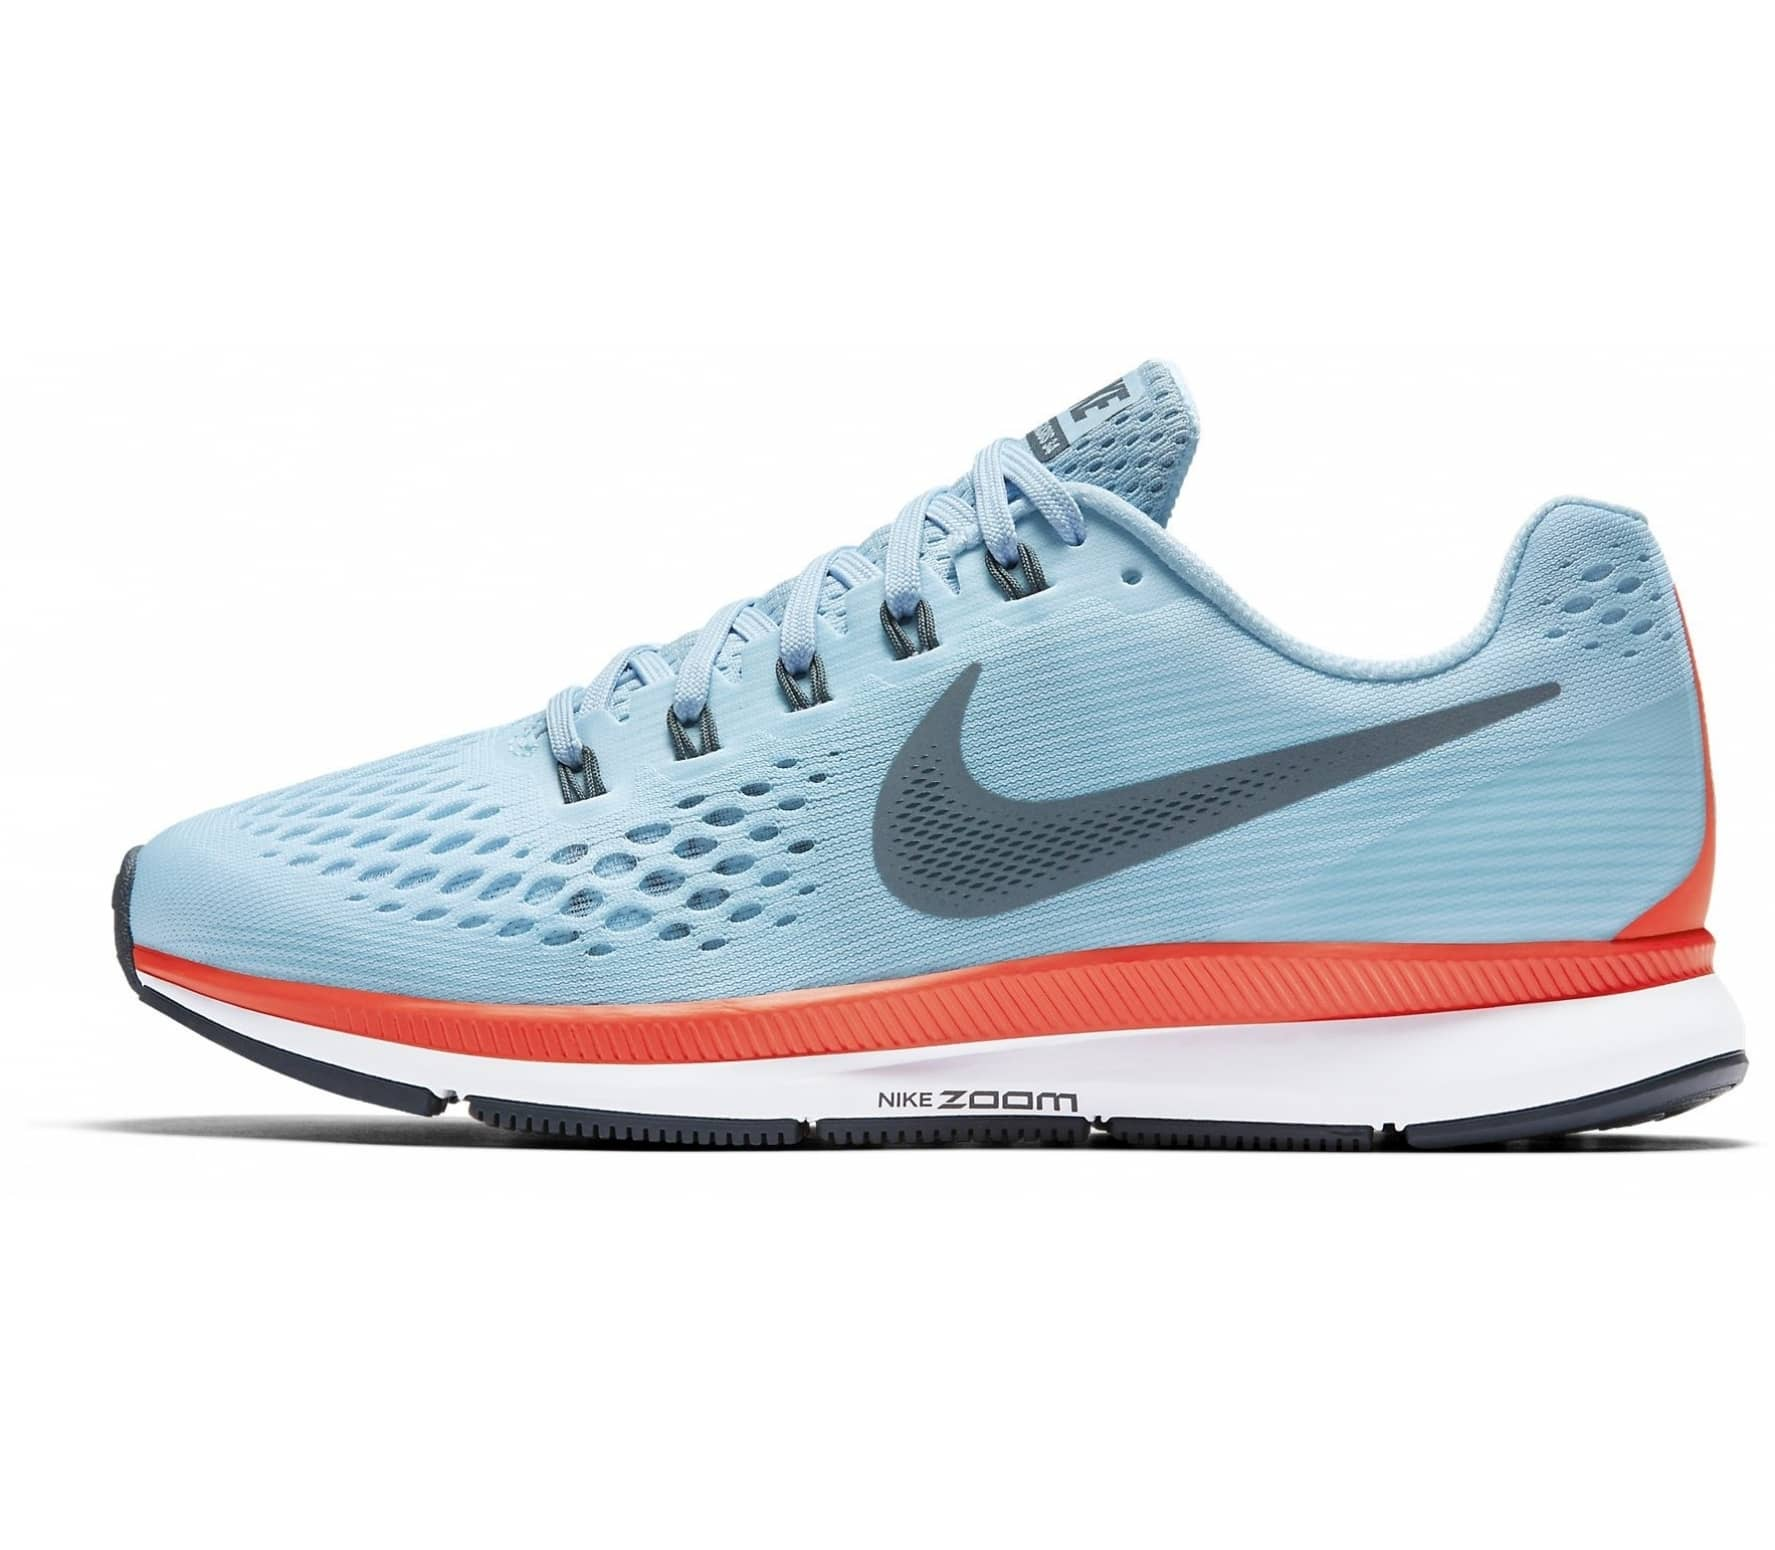 purchase cheap d4994 21f85 Nike - Air Zoom Pegasus 34 zapatillas de running para mujer (azul claro)